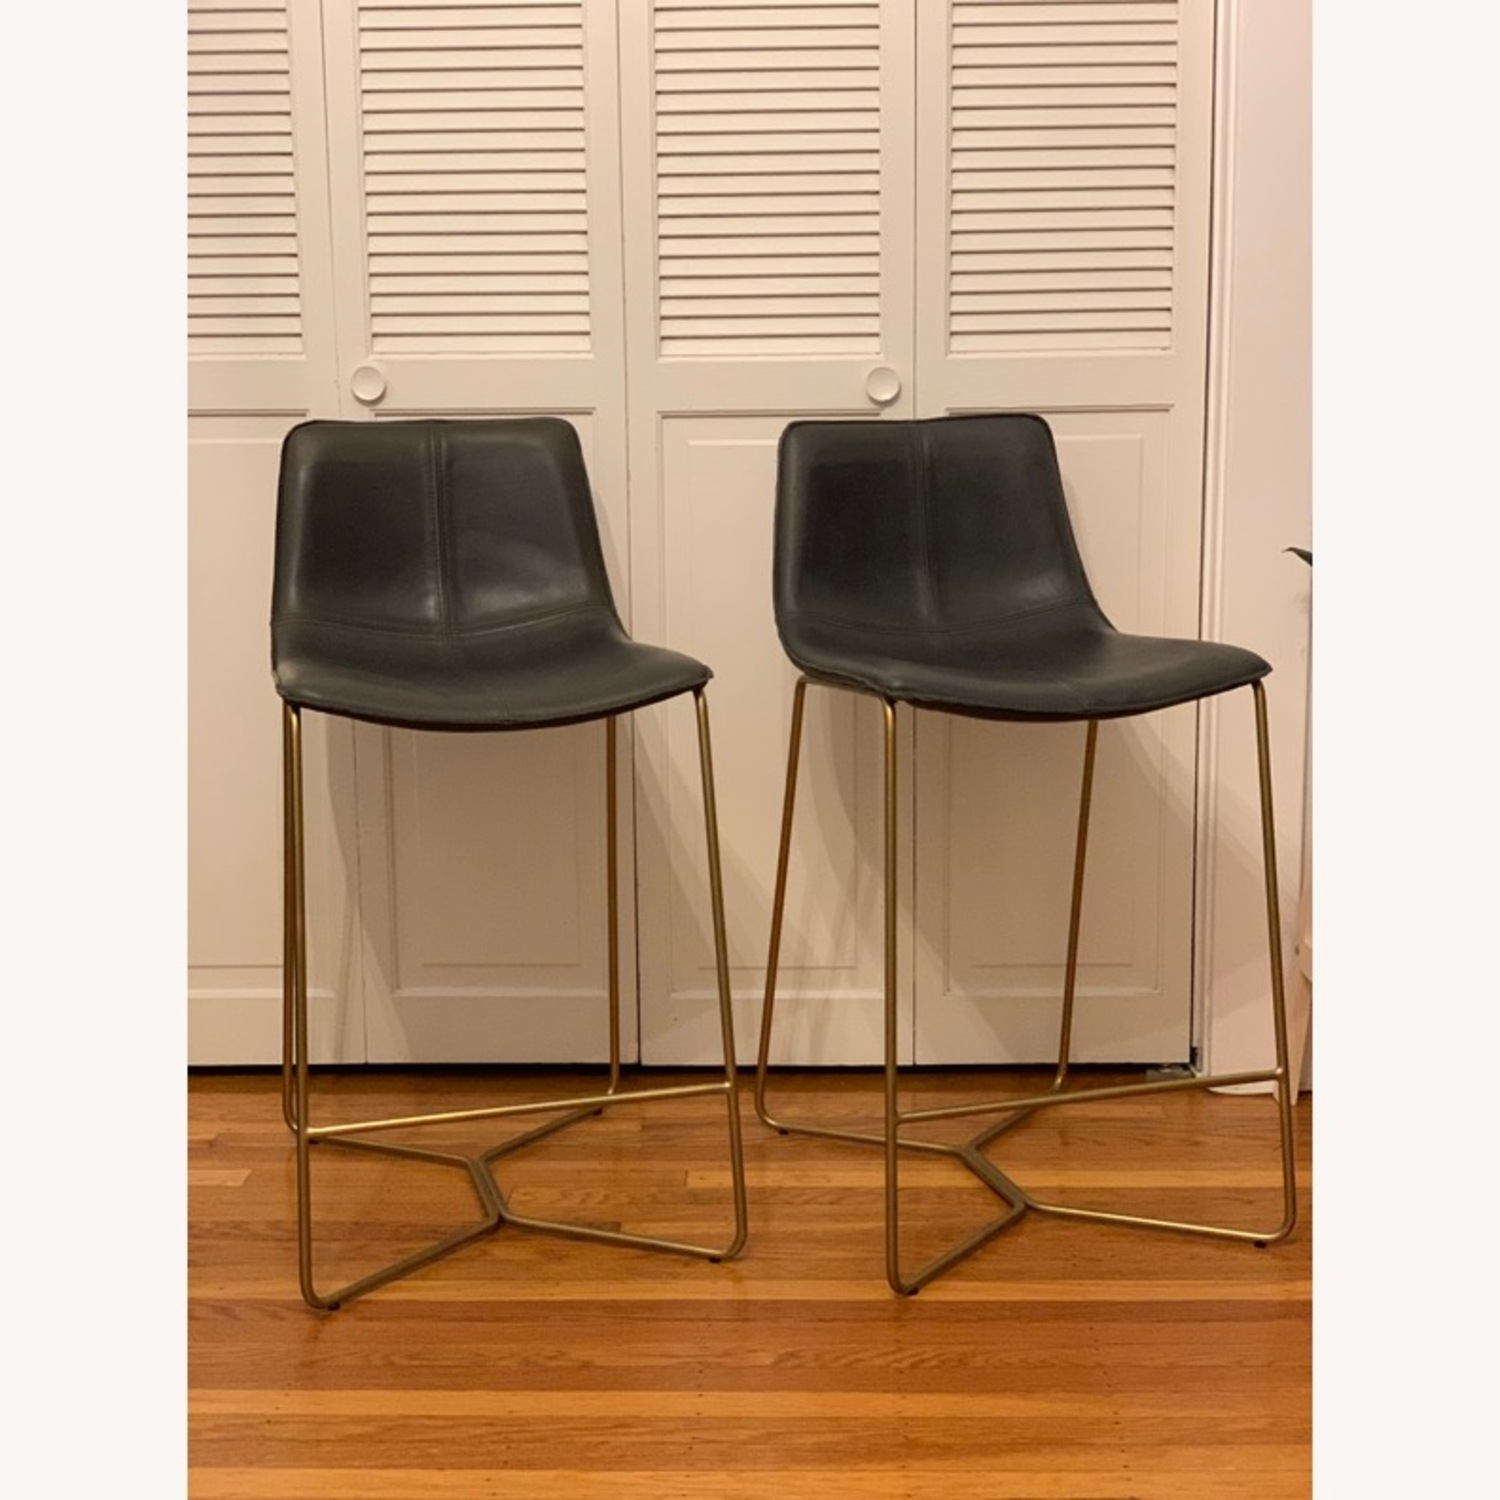 West Elm Slope Leather Counter Stools - image-1